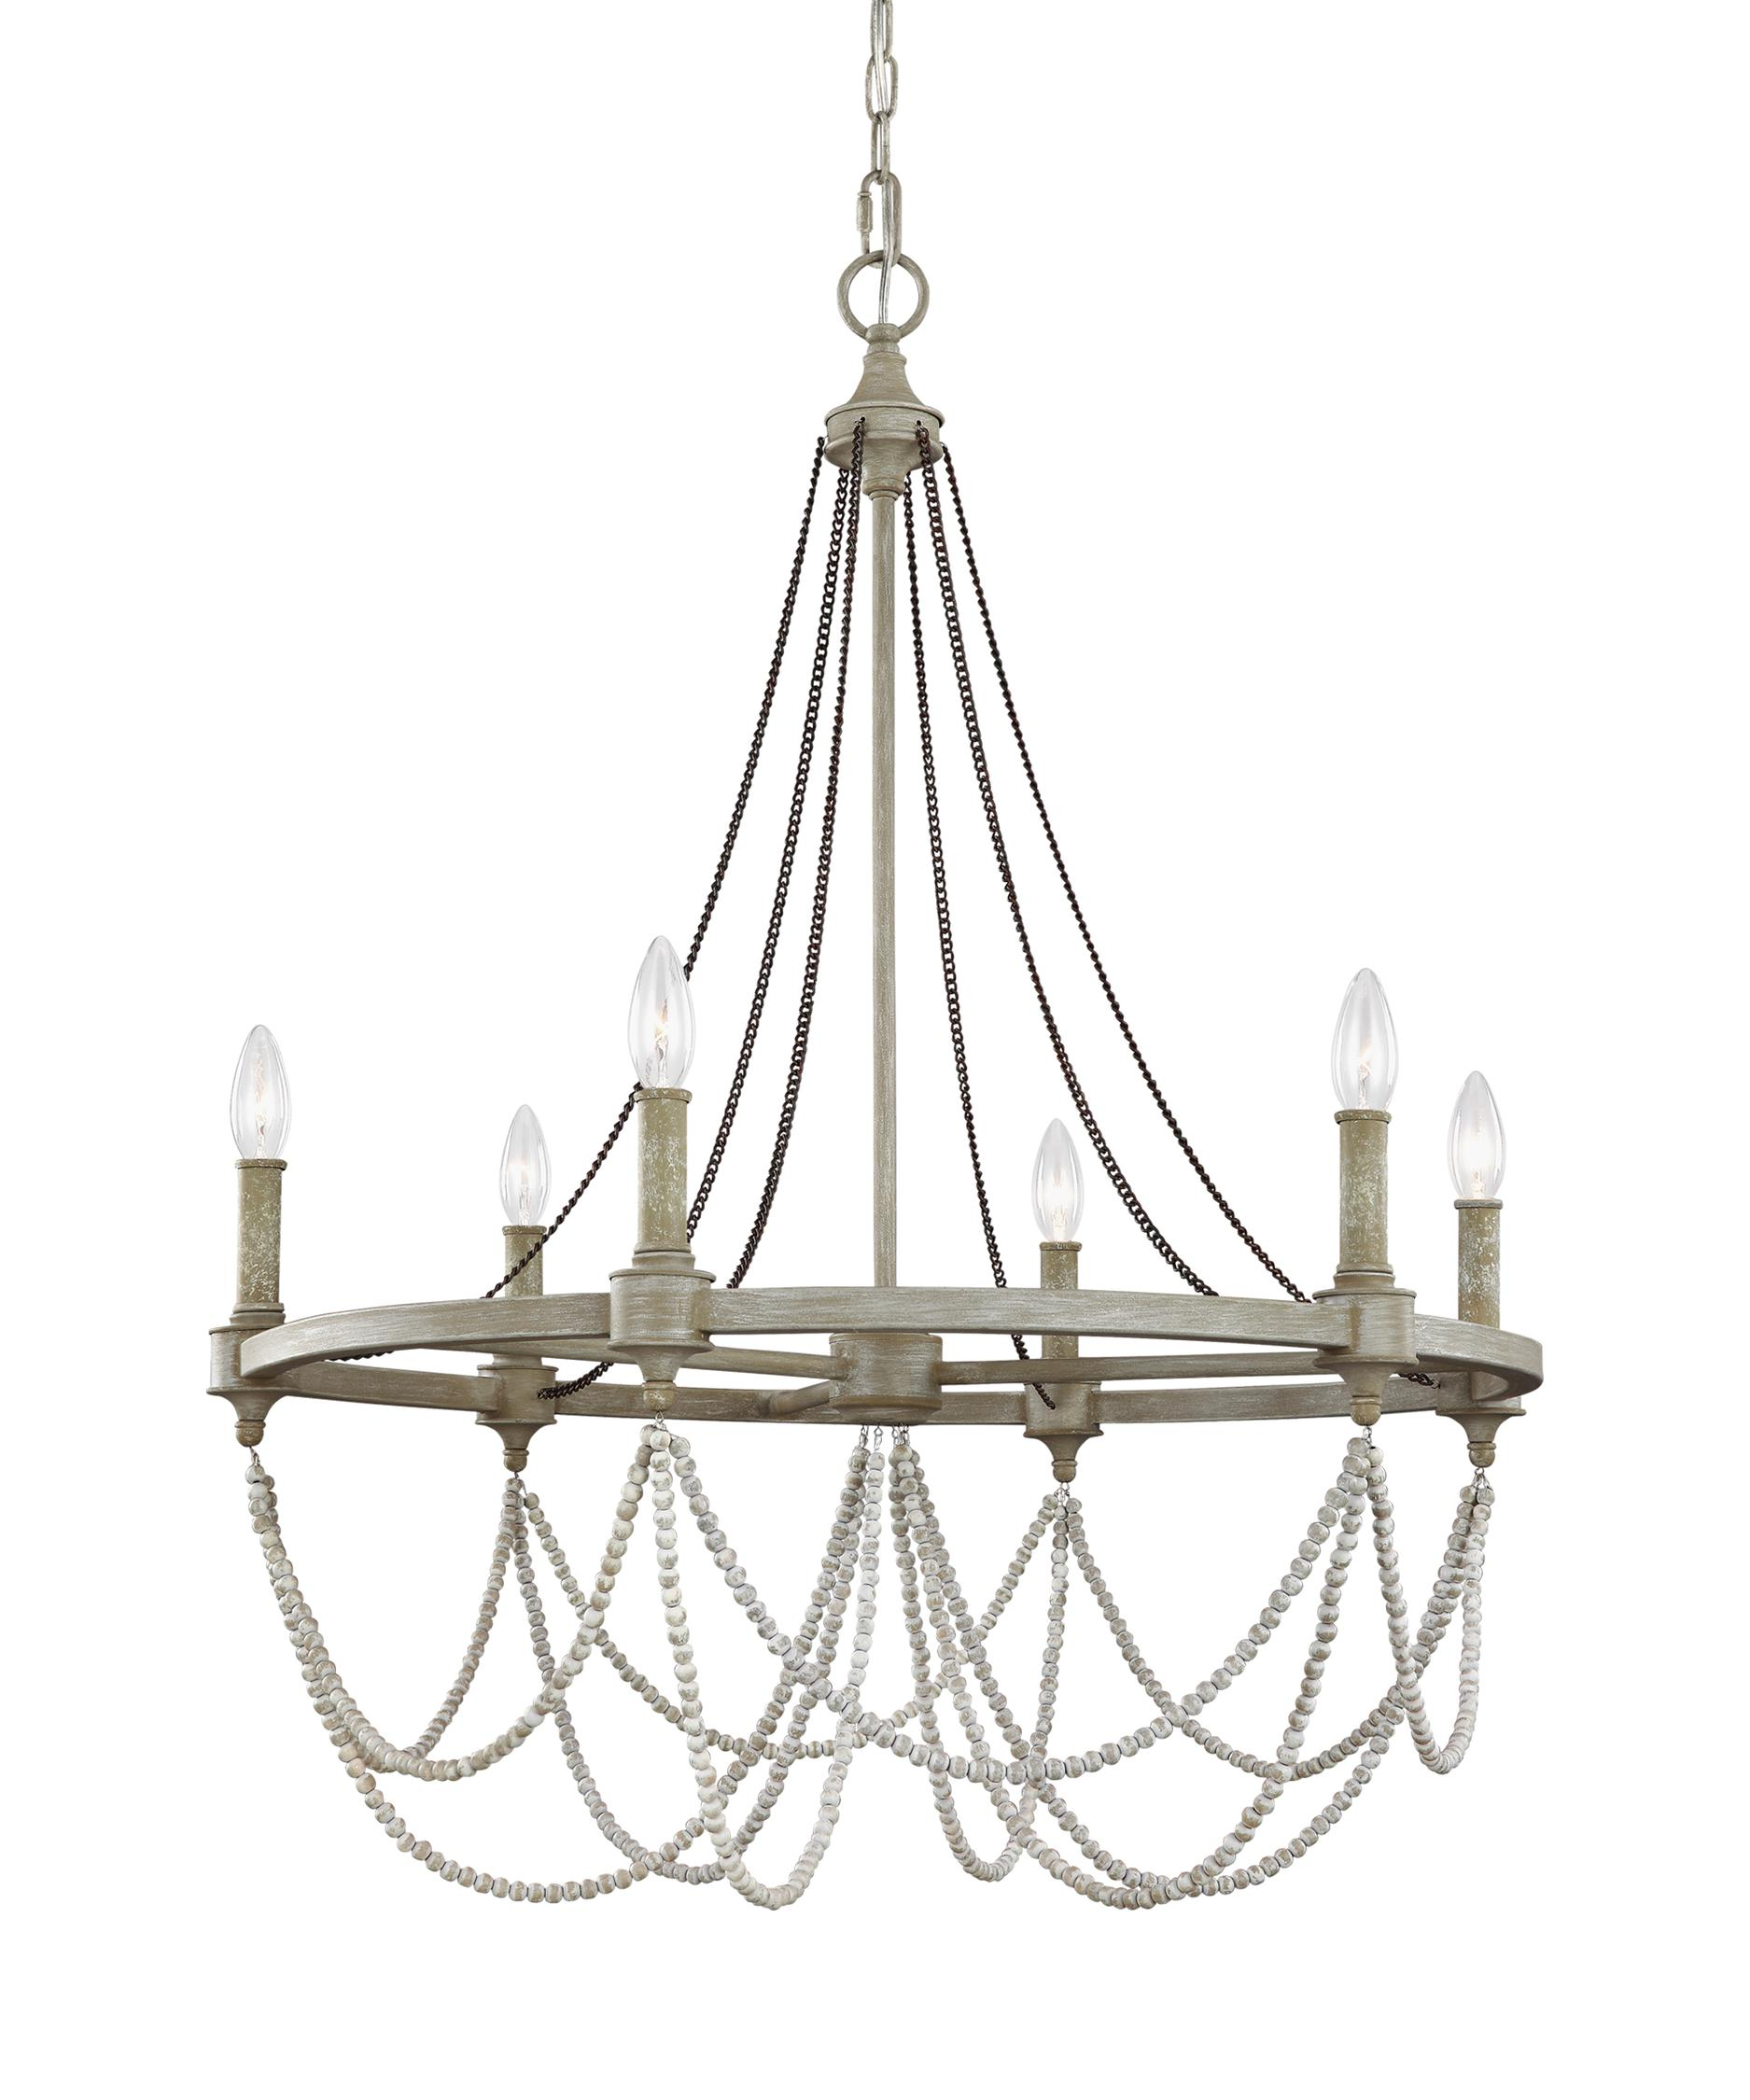 Feiss Chandelier Charming Feiss Chandelier For Home Decor